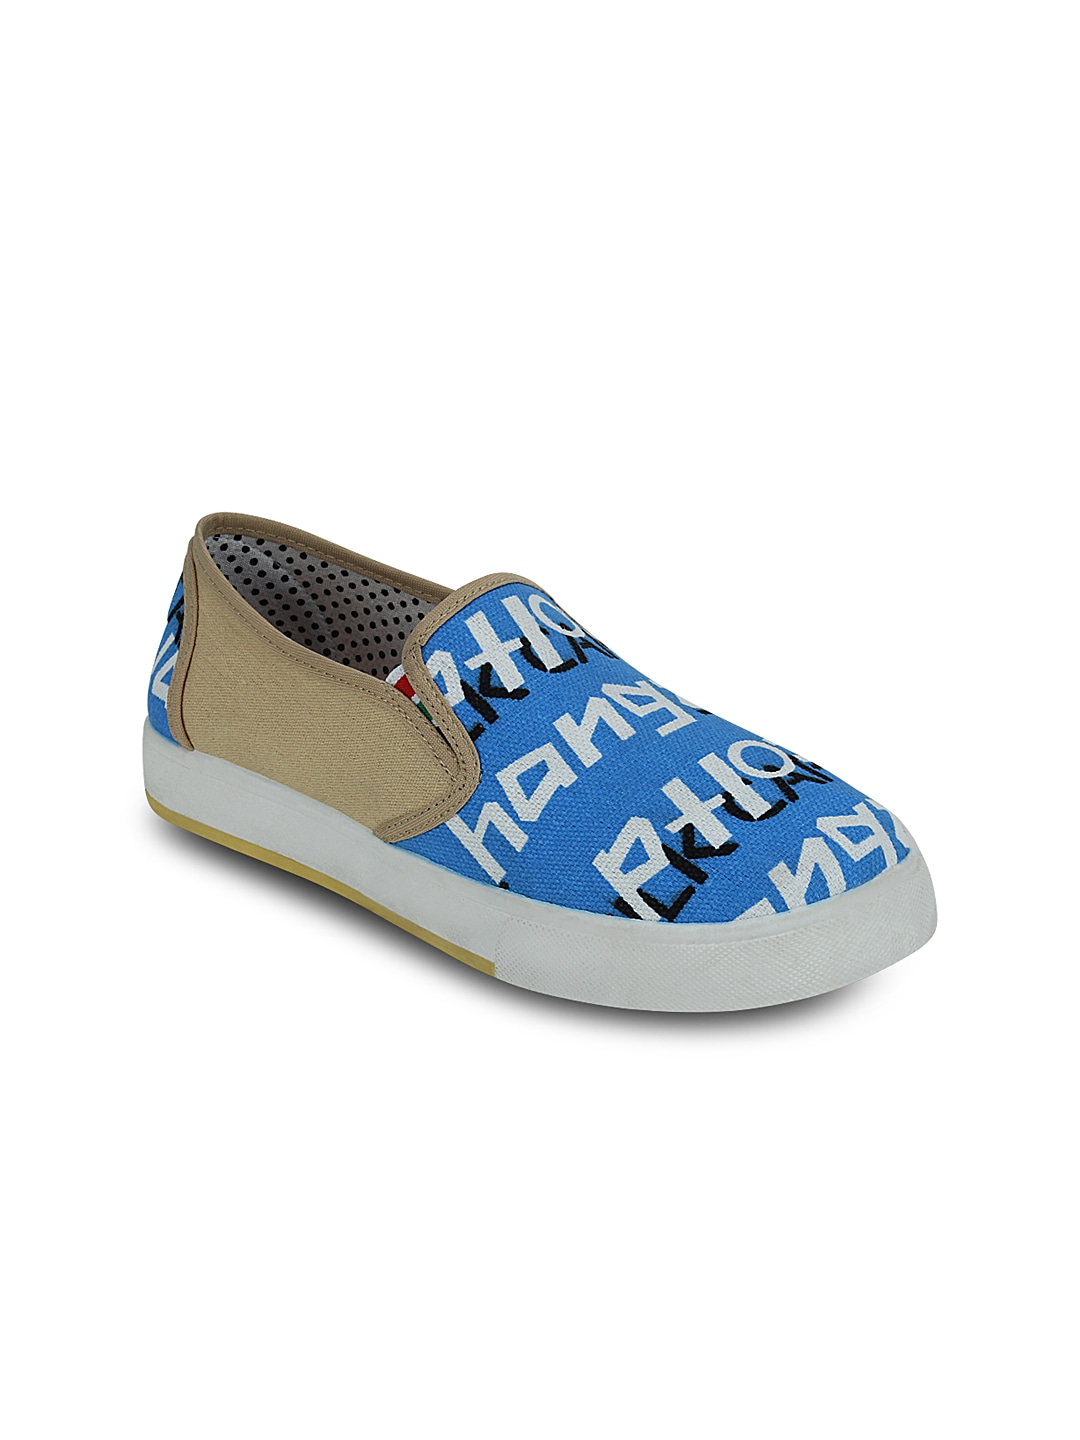 Blue Printed Slip-On Sneakers